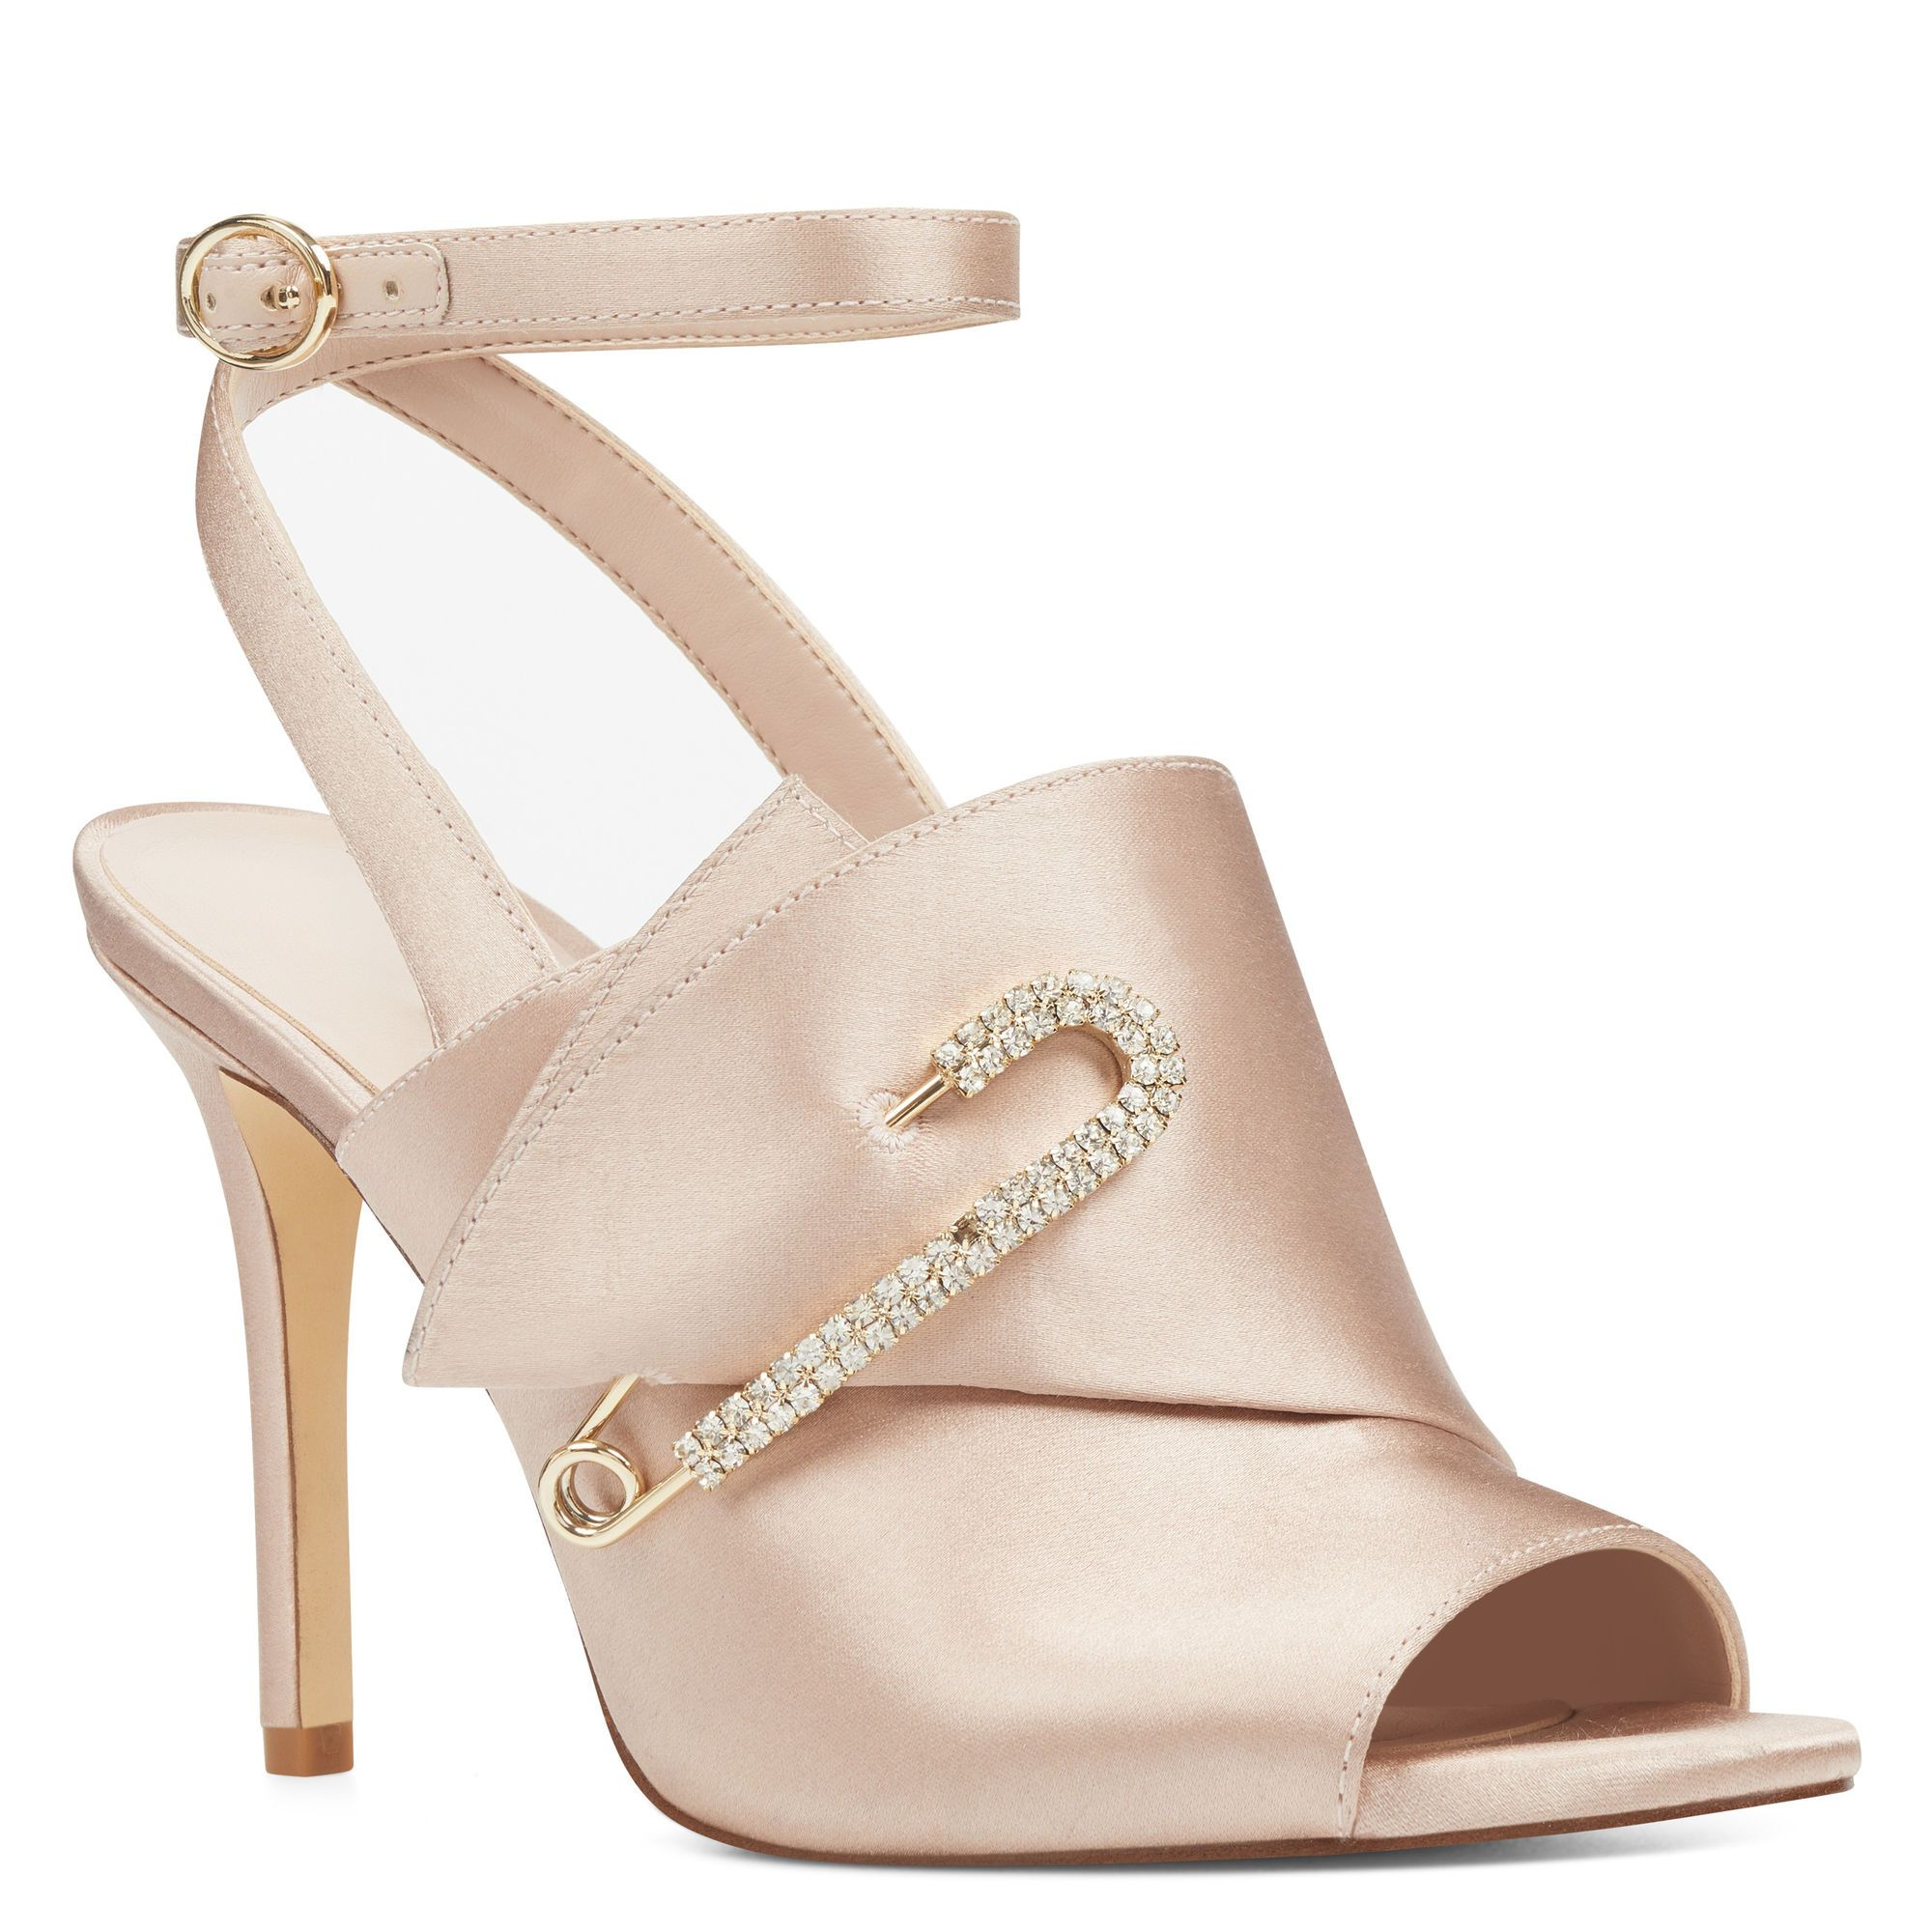 b71ccefb8a9 Shoes and handbags for women. Madge Ankle Strap Sandals - Free Shipping  available at NineWest.com